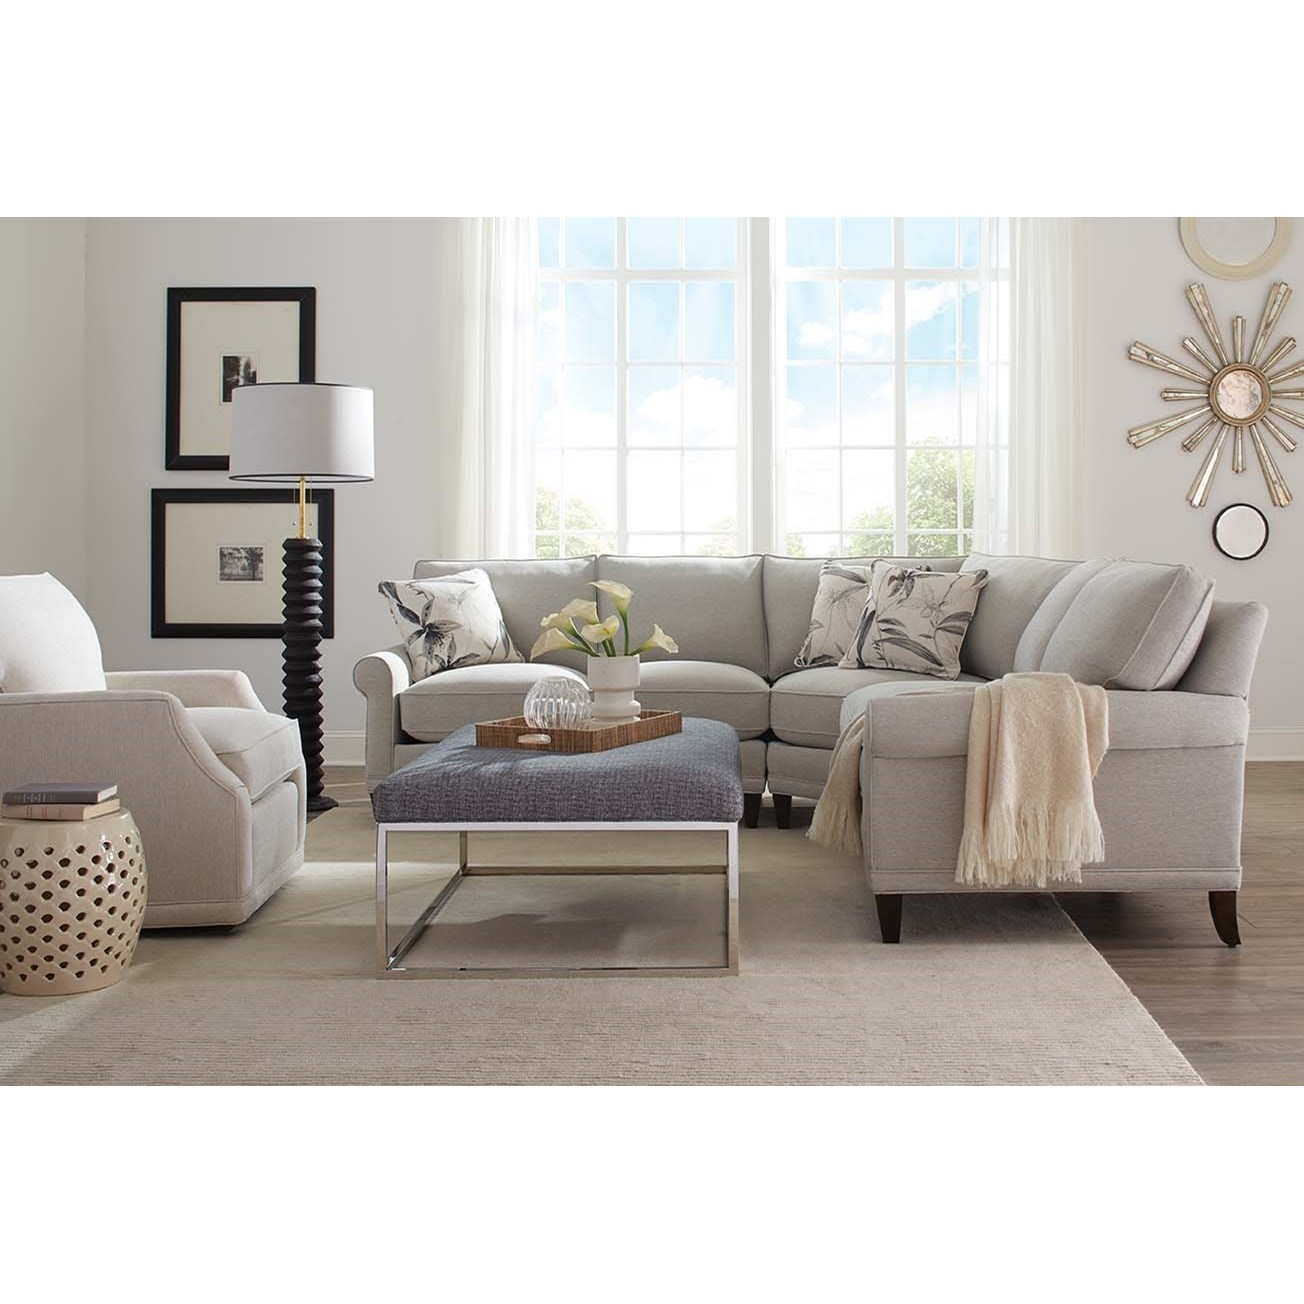 Rowe My Style Ii Customizable Sectional Sofa With Rolled